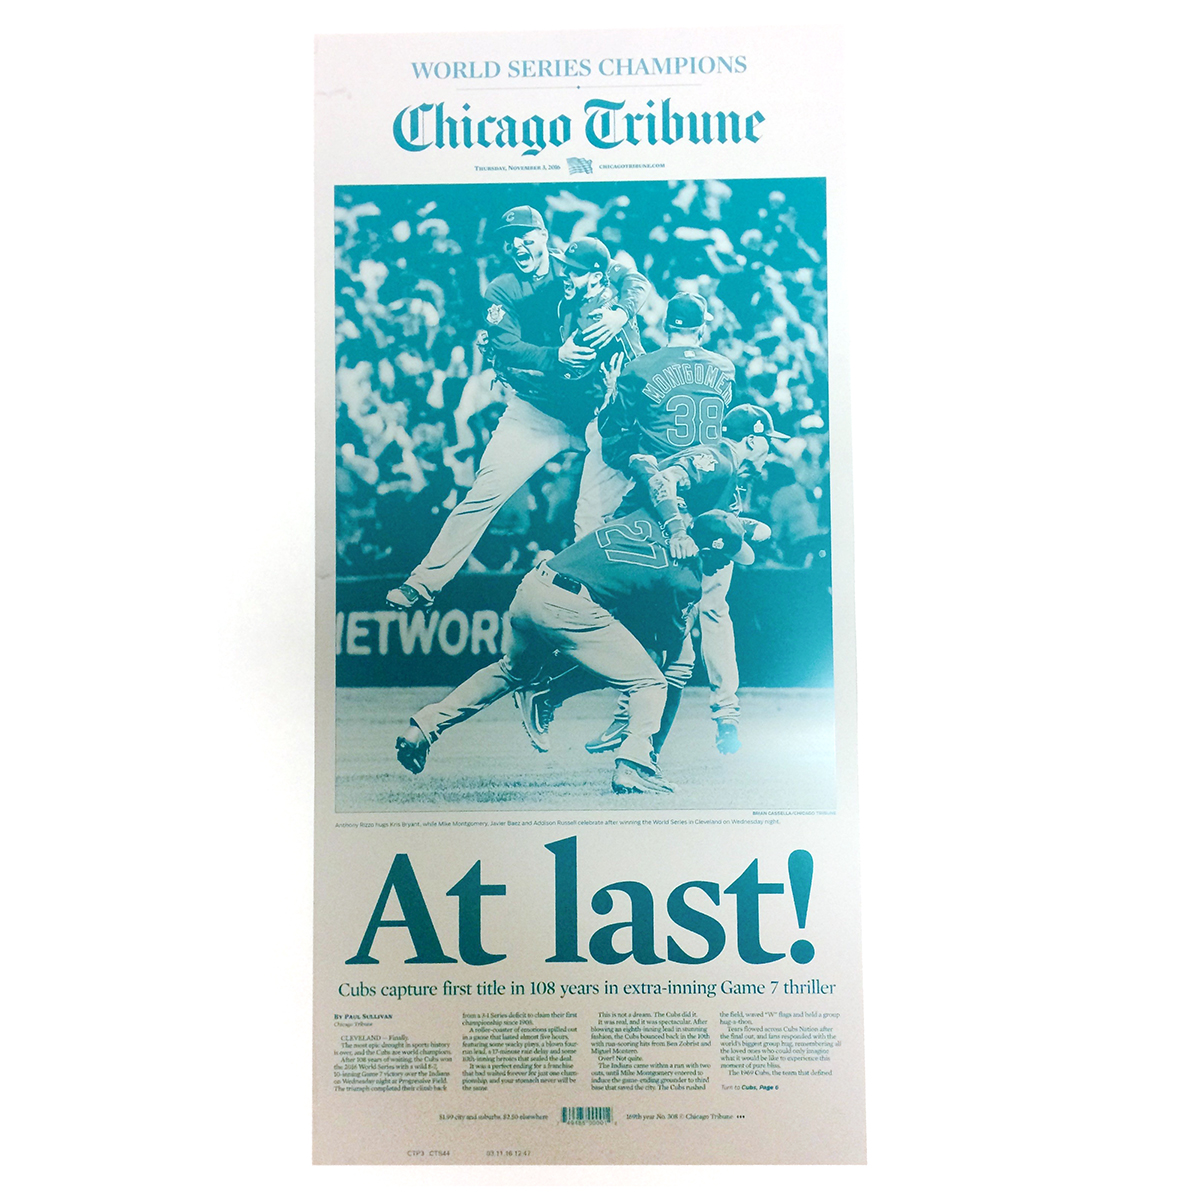 Chicago Tribune 11/3/2016 Chicago Cubs World Series Championship Press Plate